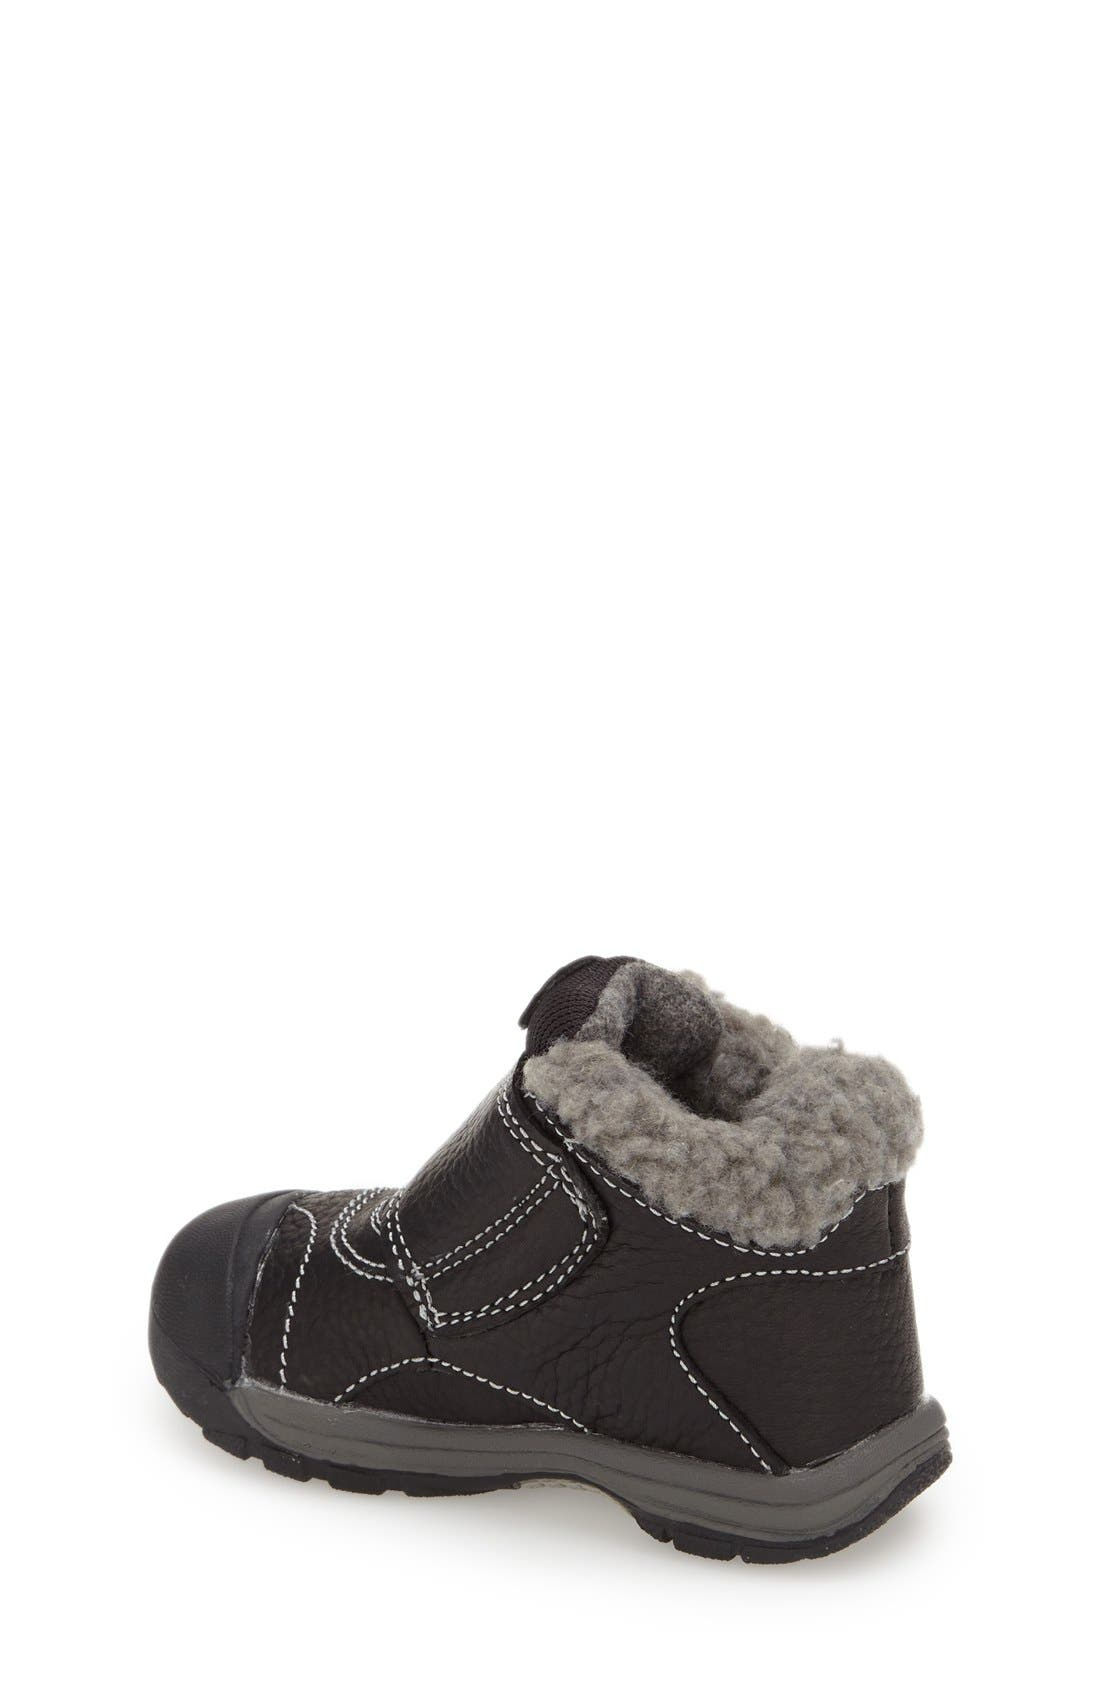 Alternate Image 2  - Keen 'Kootenay' Boot (Baby, Walker, Toddler & Little Kid)